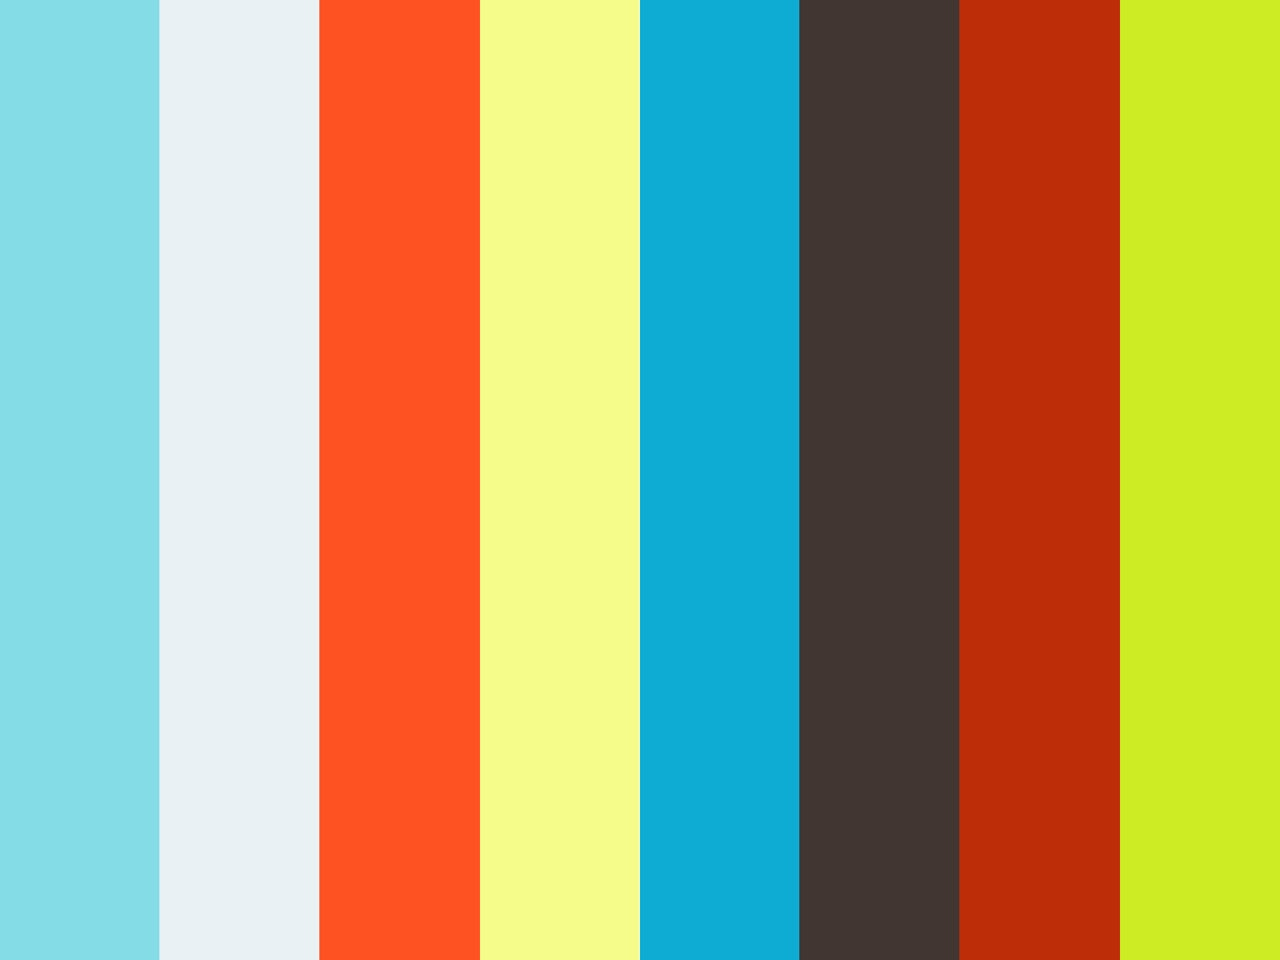 Quality of Local Excision for Rectal Neoplasms Using Transanal Minimally Invasive Surgery 2017